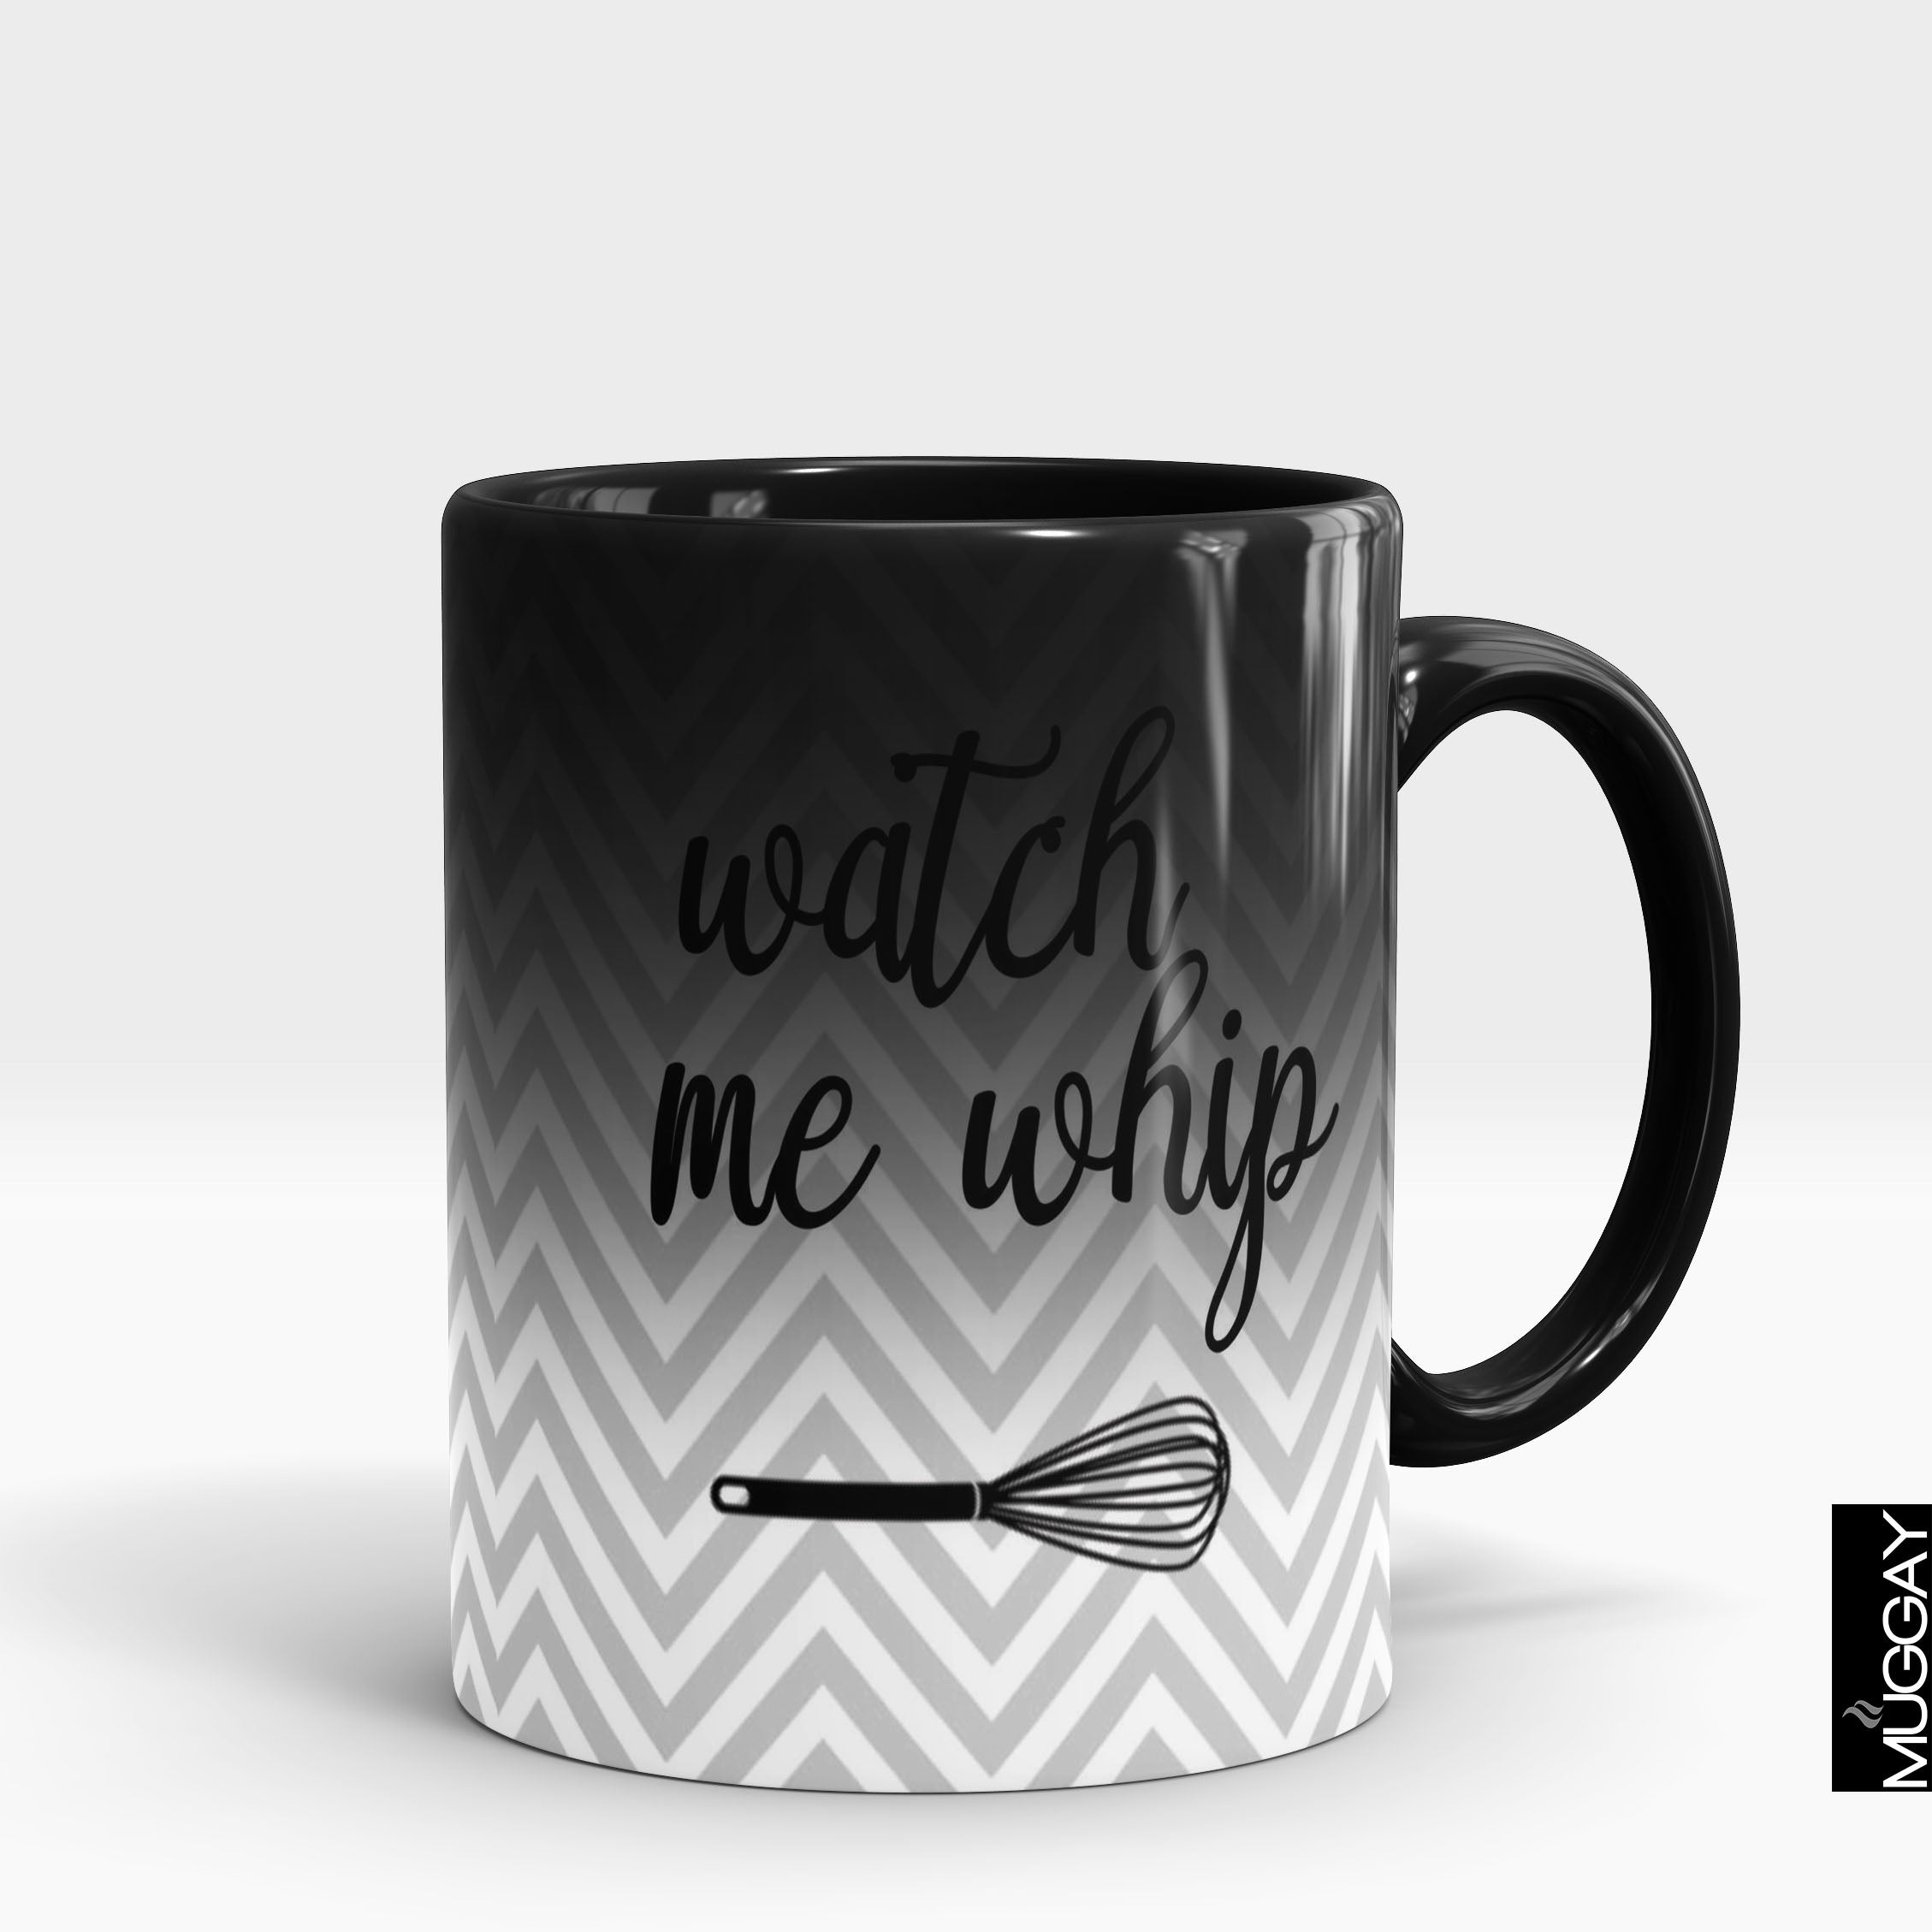 Baking Mug - bkr4 - Muggay.com - Mugs - Printing shop - truck Art mugs - Mug printing - Customized printing - Digital printing - Muggay